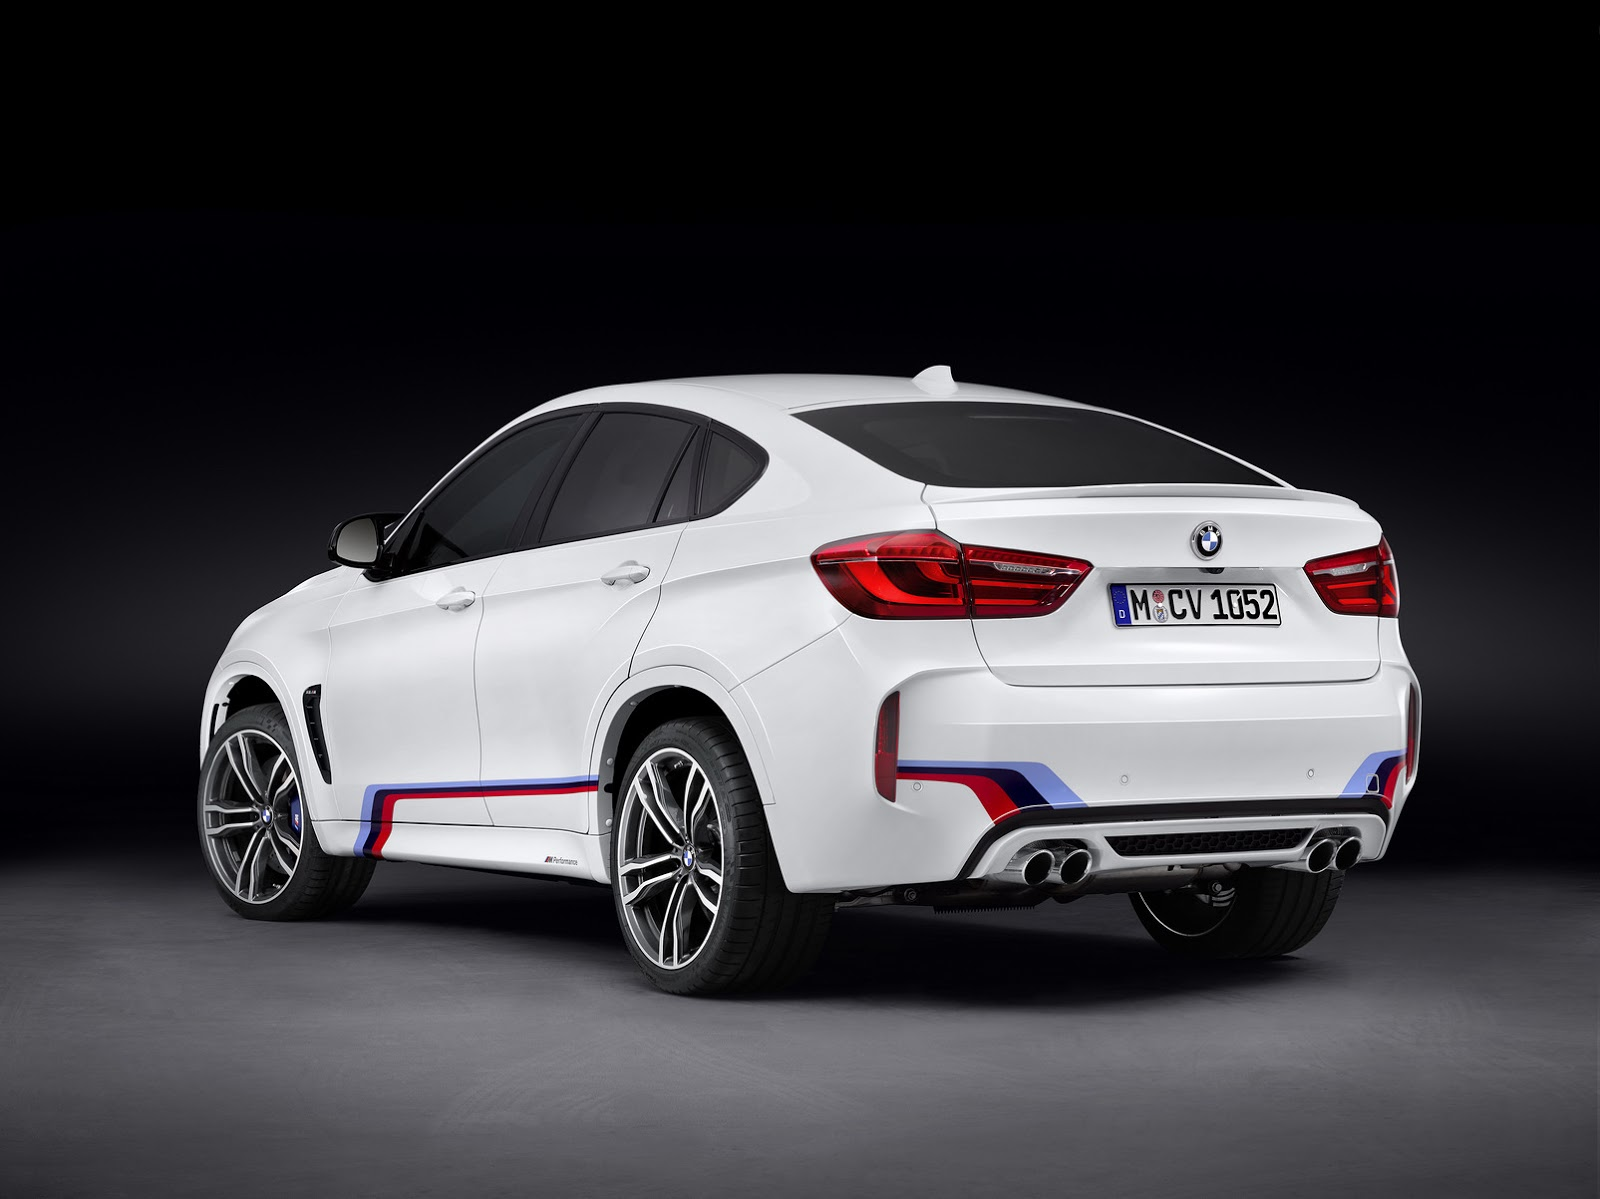 Bmw X5 M And X6 M With M Performance Parts Revealed Gtspirit